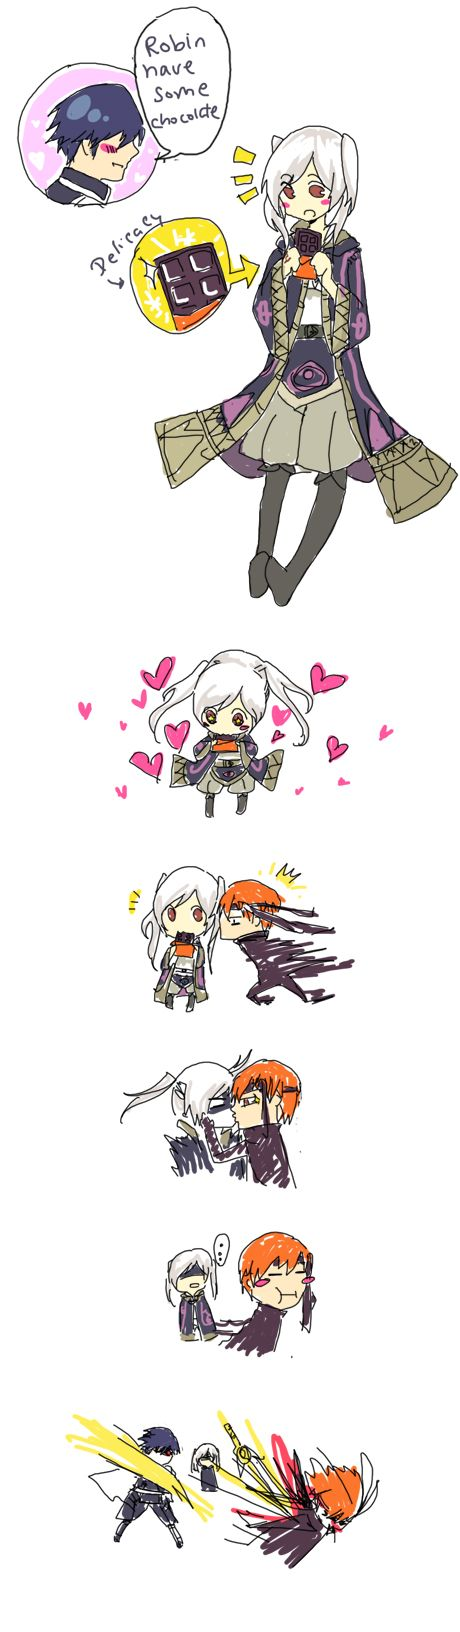 Gaius Confect by C2ii on deviantART - Love how Chrom is so jealous. So cute. :3